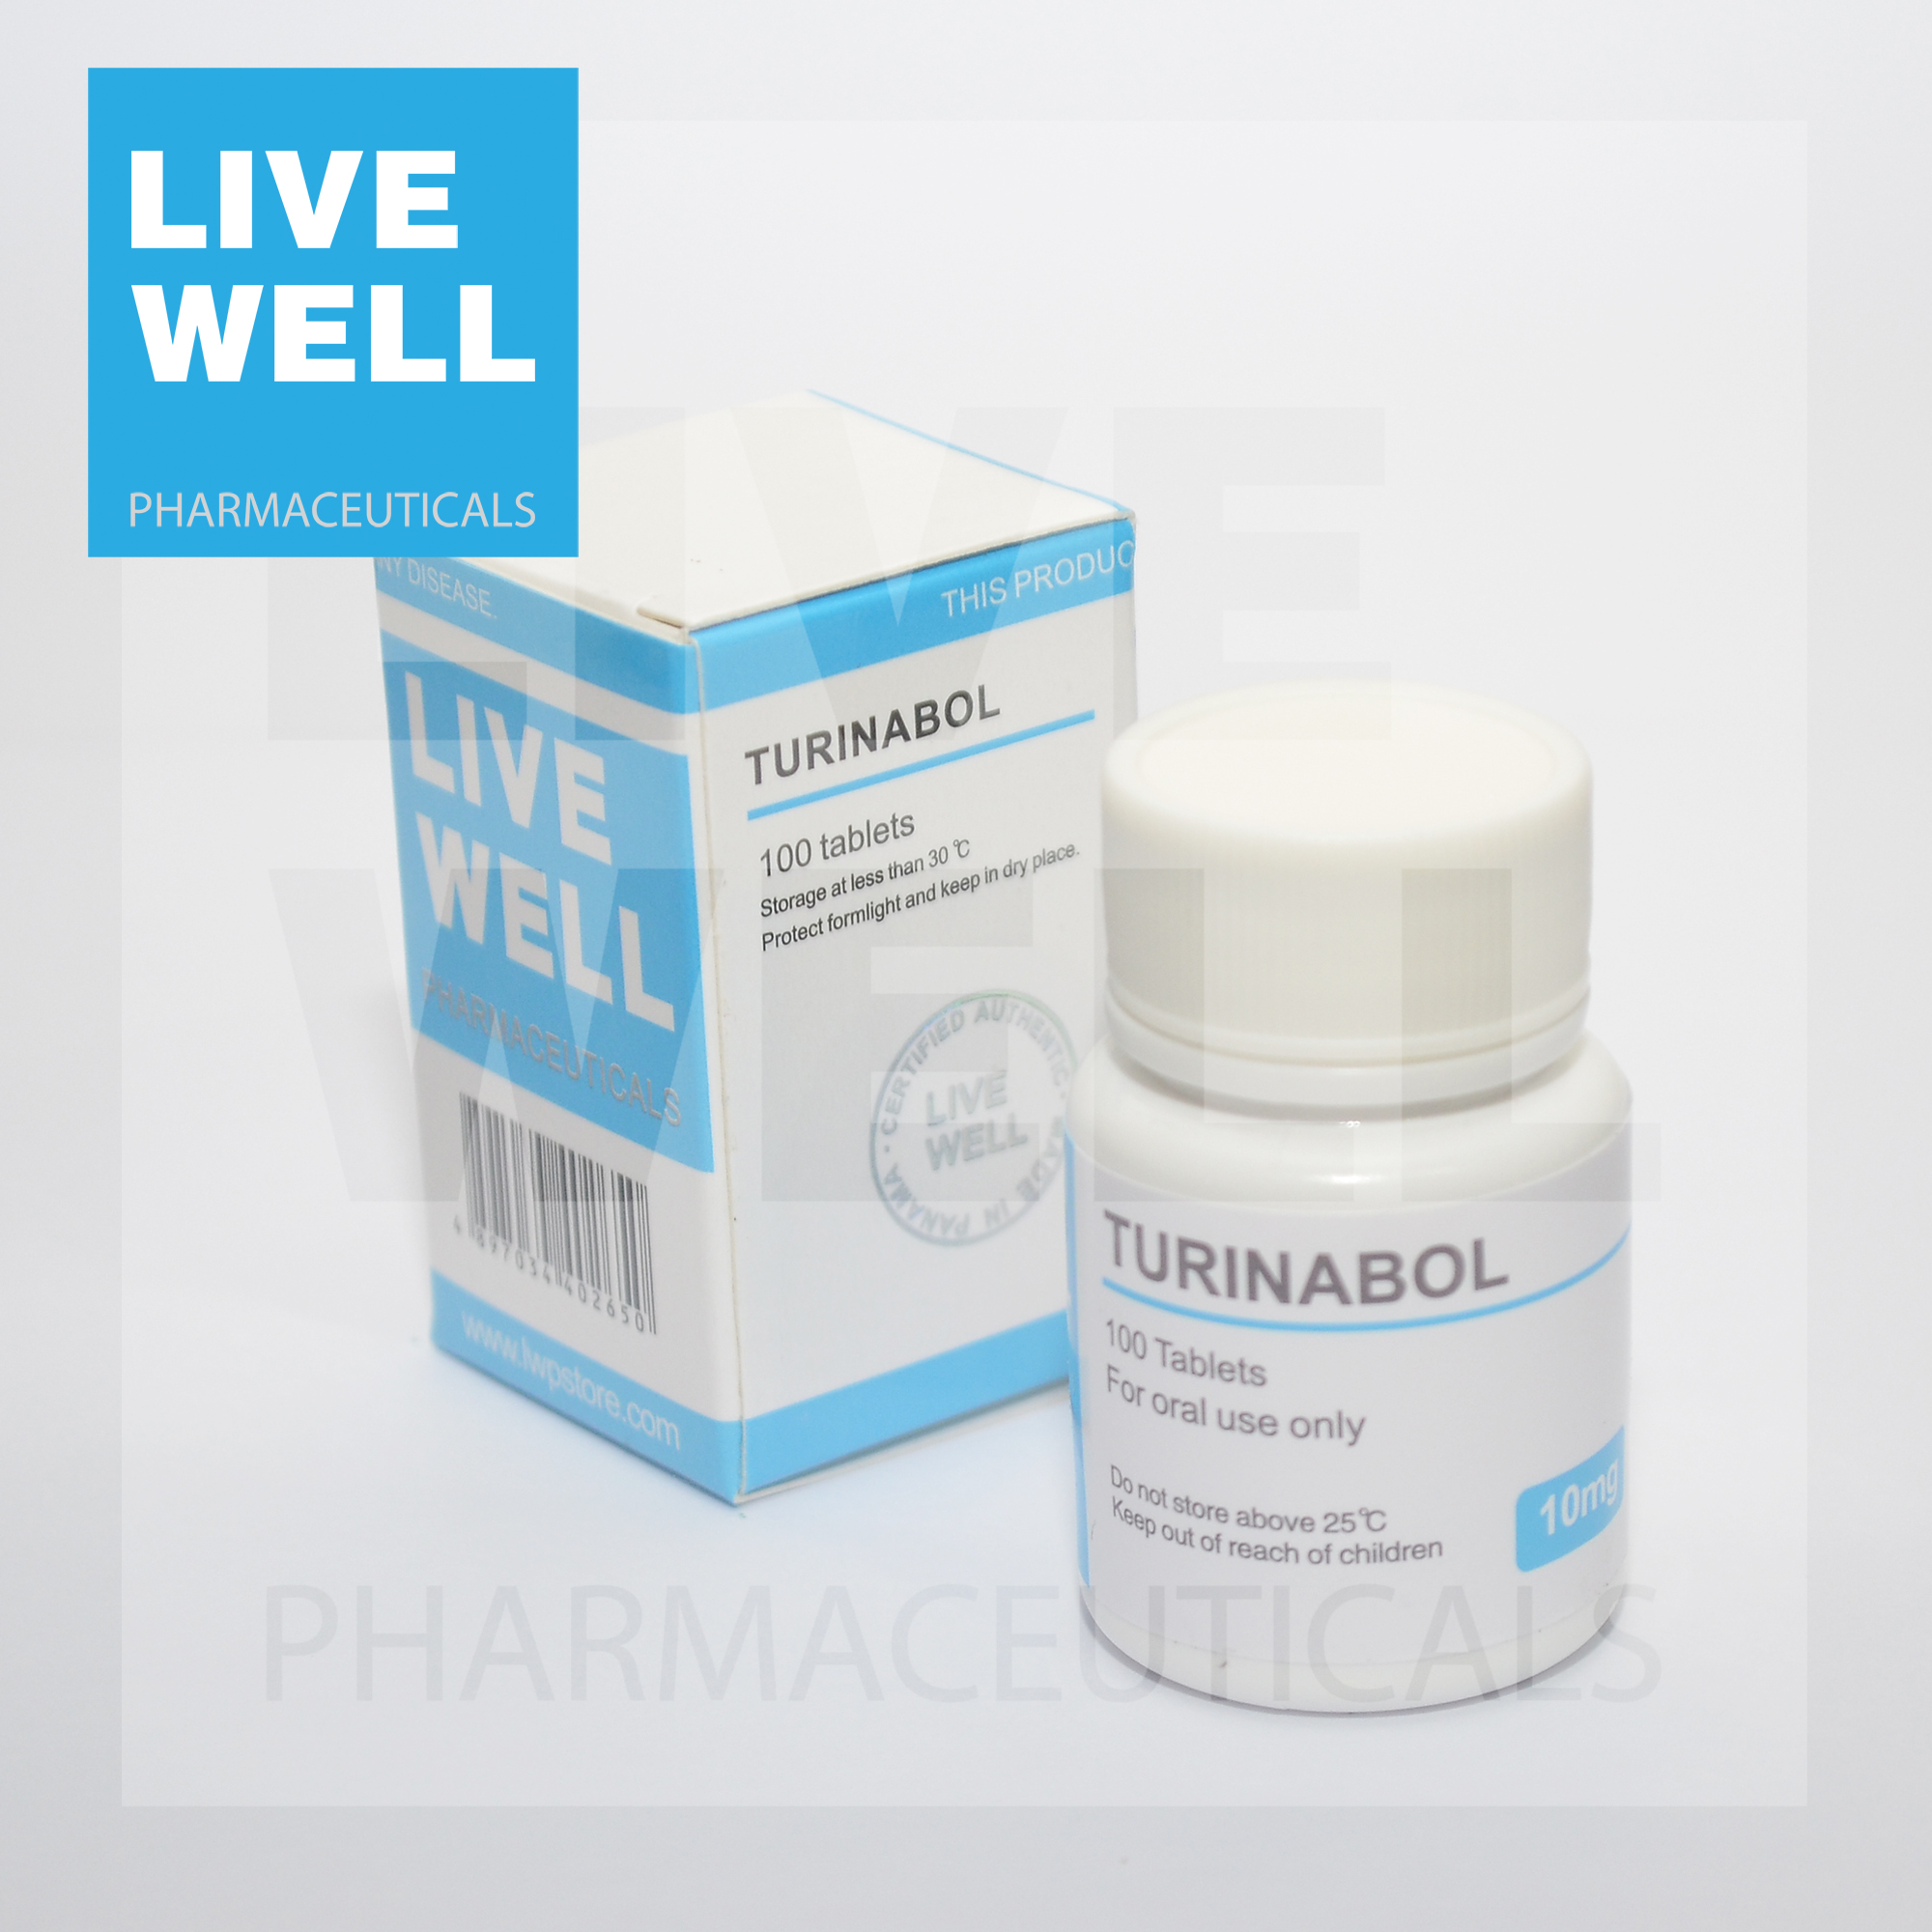 Turinabol 10mg